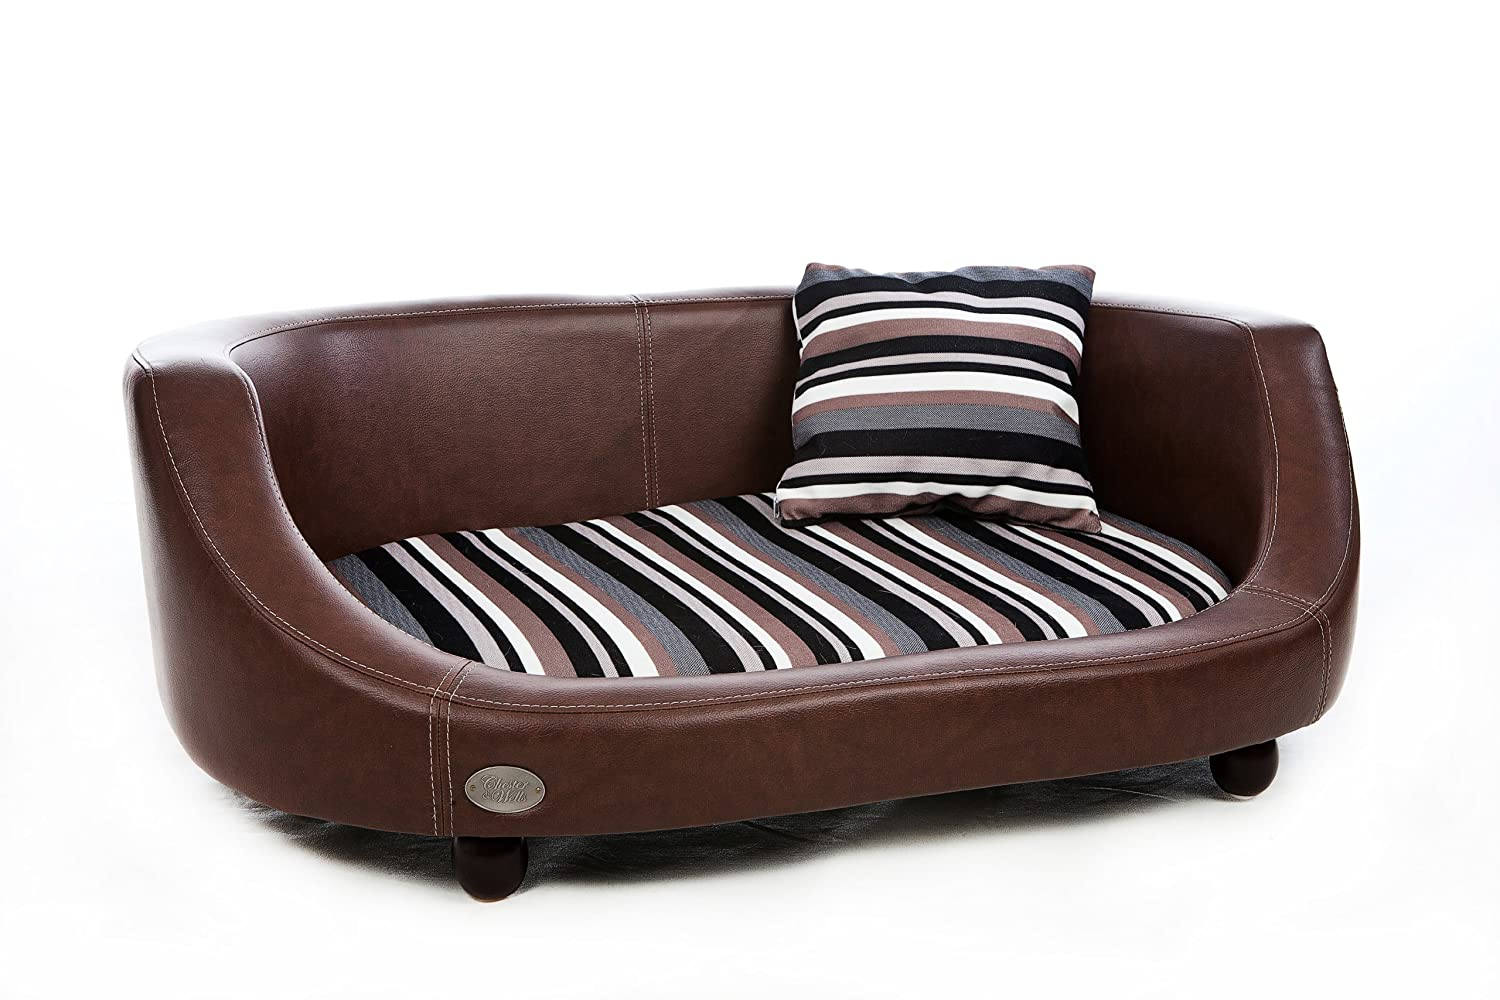 Chester and Wells Oxford II Medium Dog Bed in Chestnut Brown